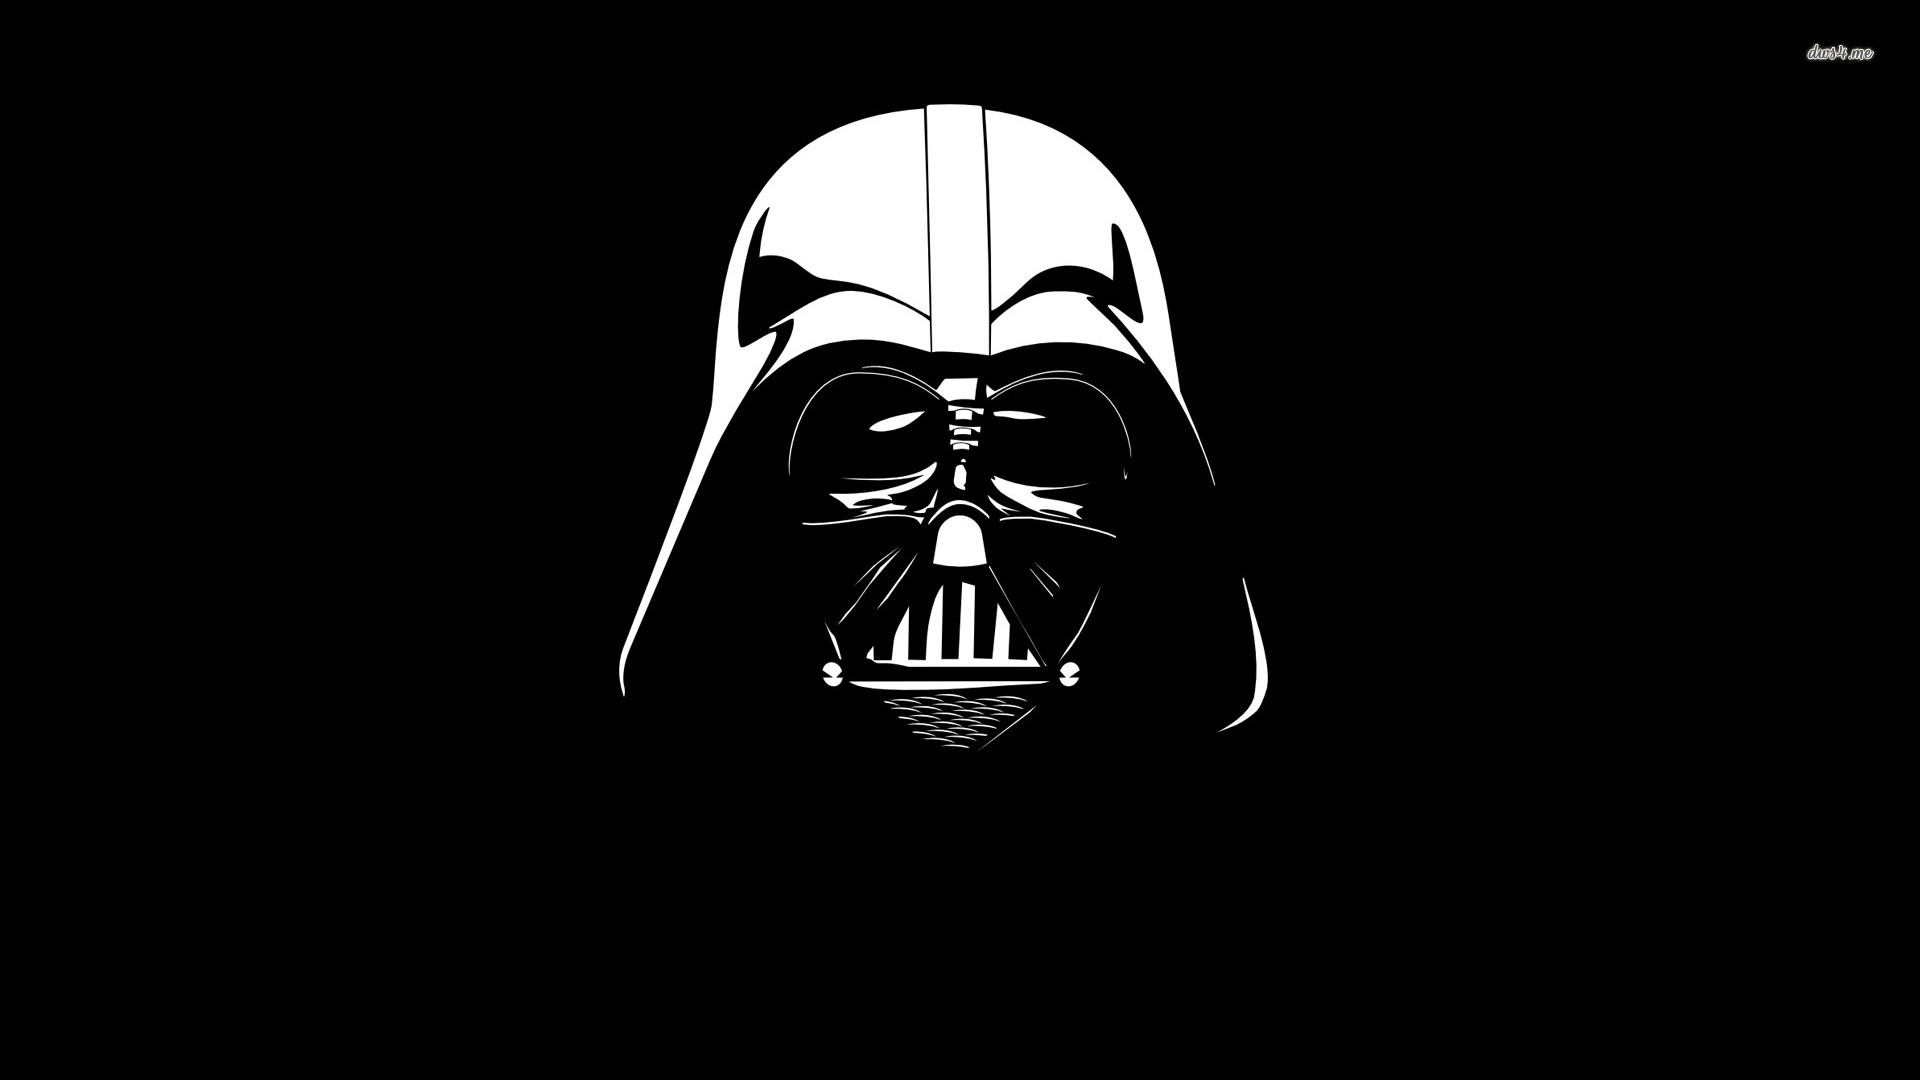 ... Darth Vader wallpaper 1920x1080 ...